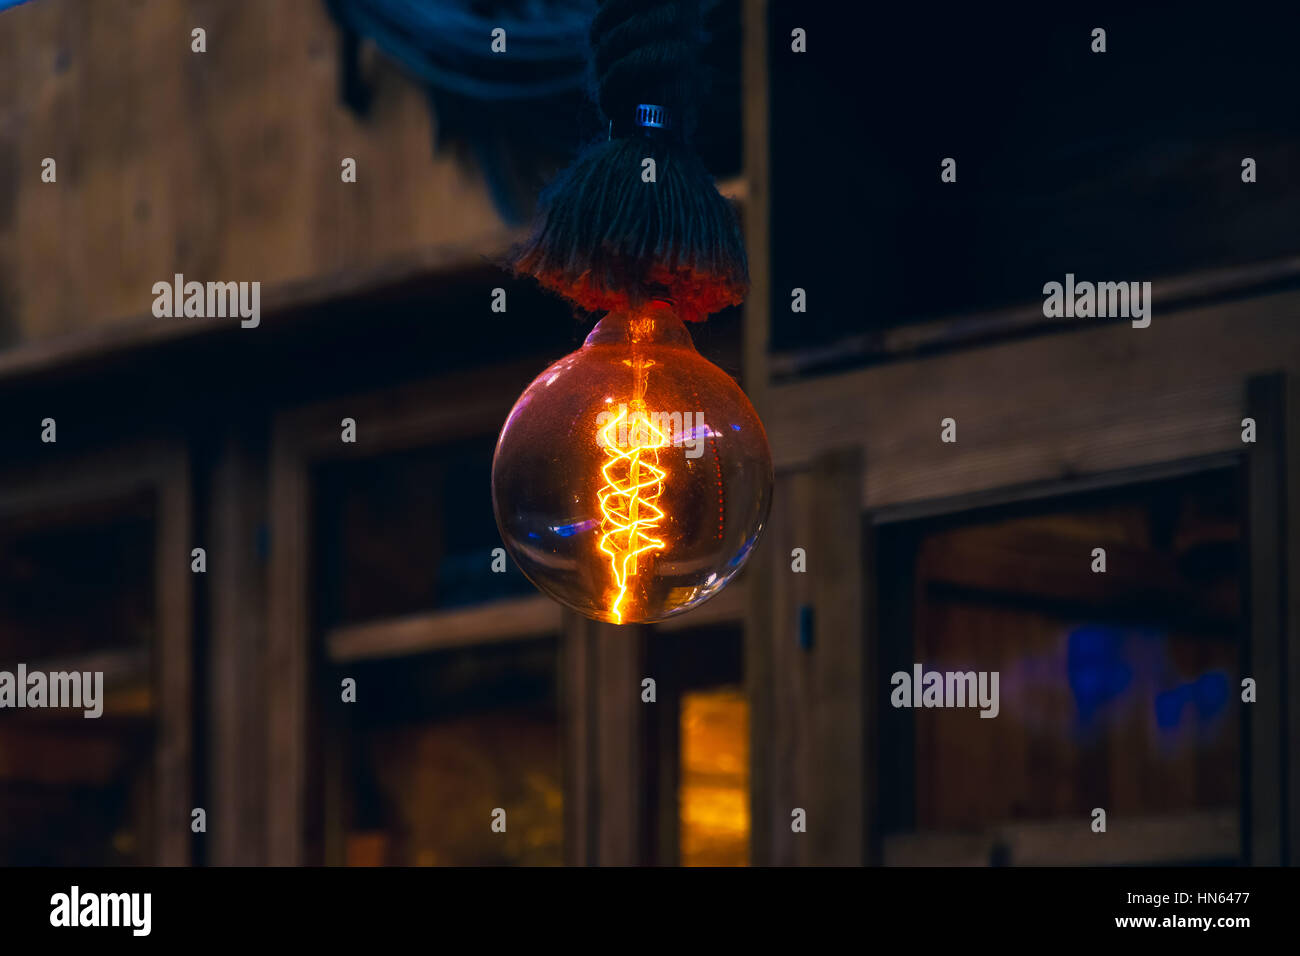 Hanging decorative filament light bulb in a dim atmosphere - Stock Image